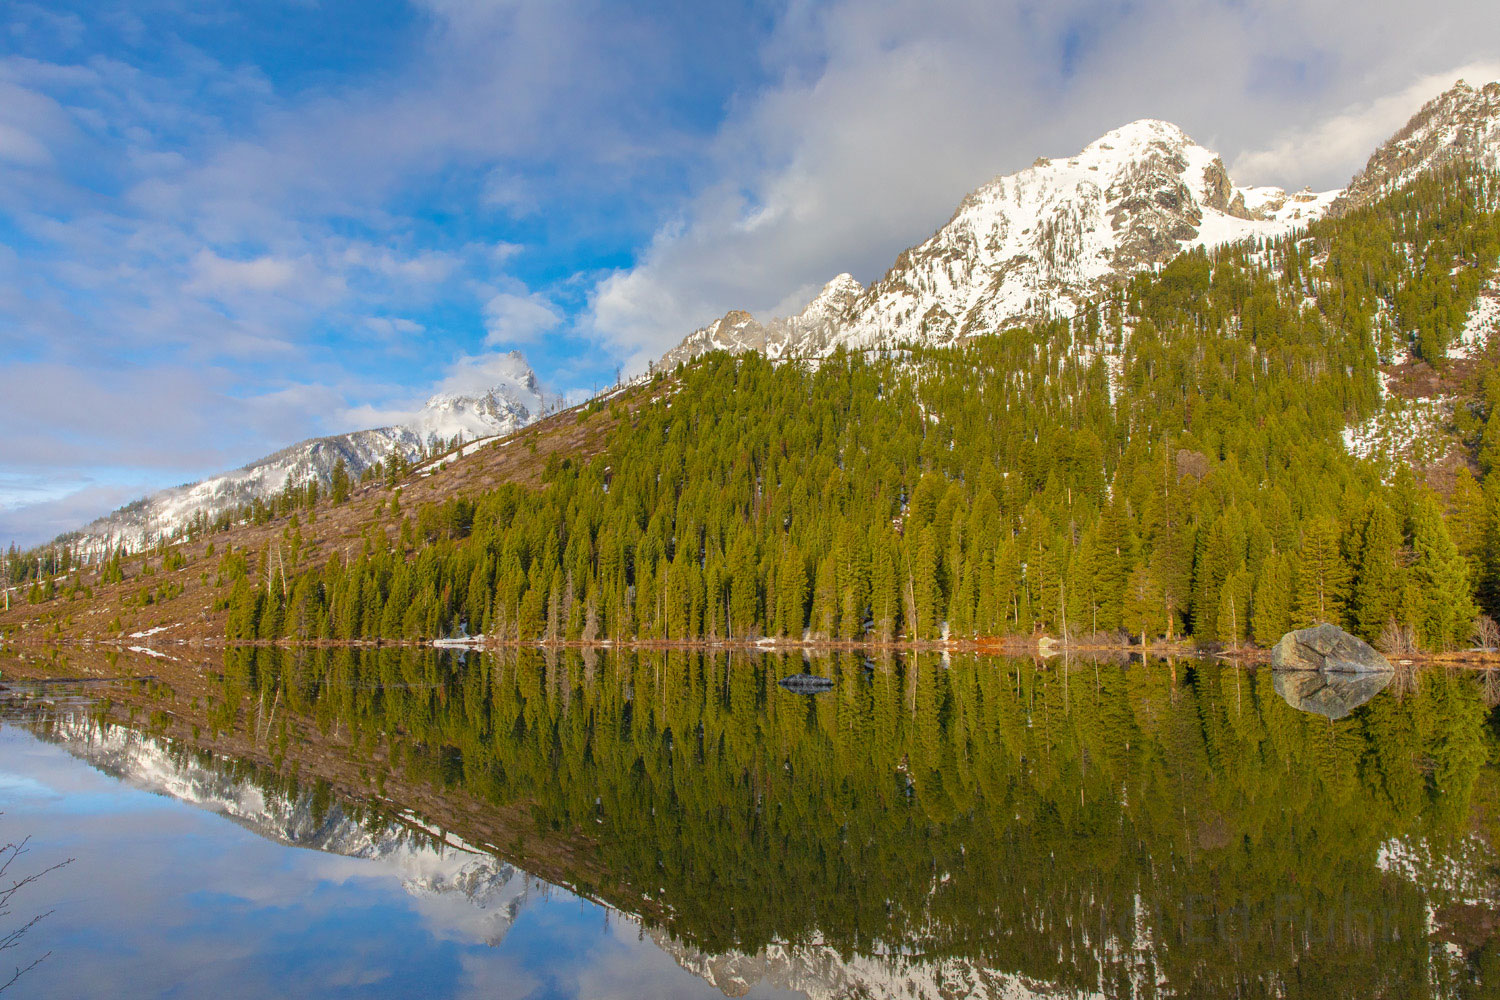 An late spring snow dusts the upper elevations of the Grand Tetons above String Lake.